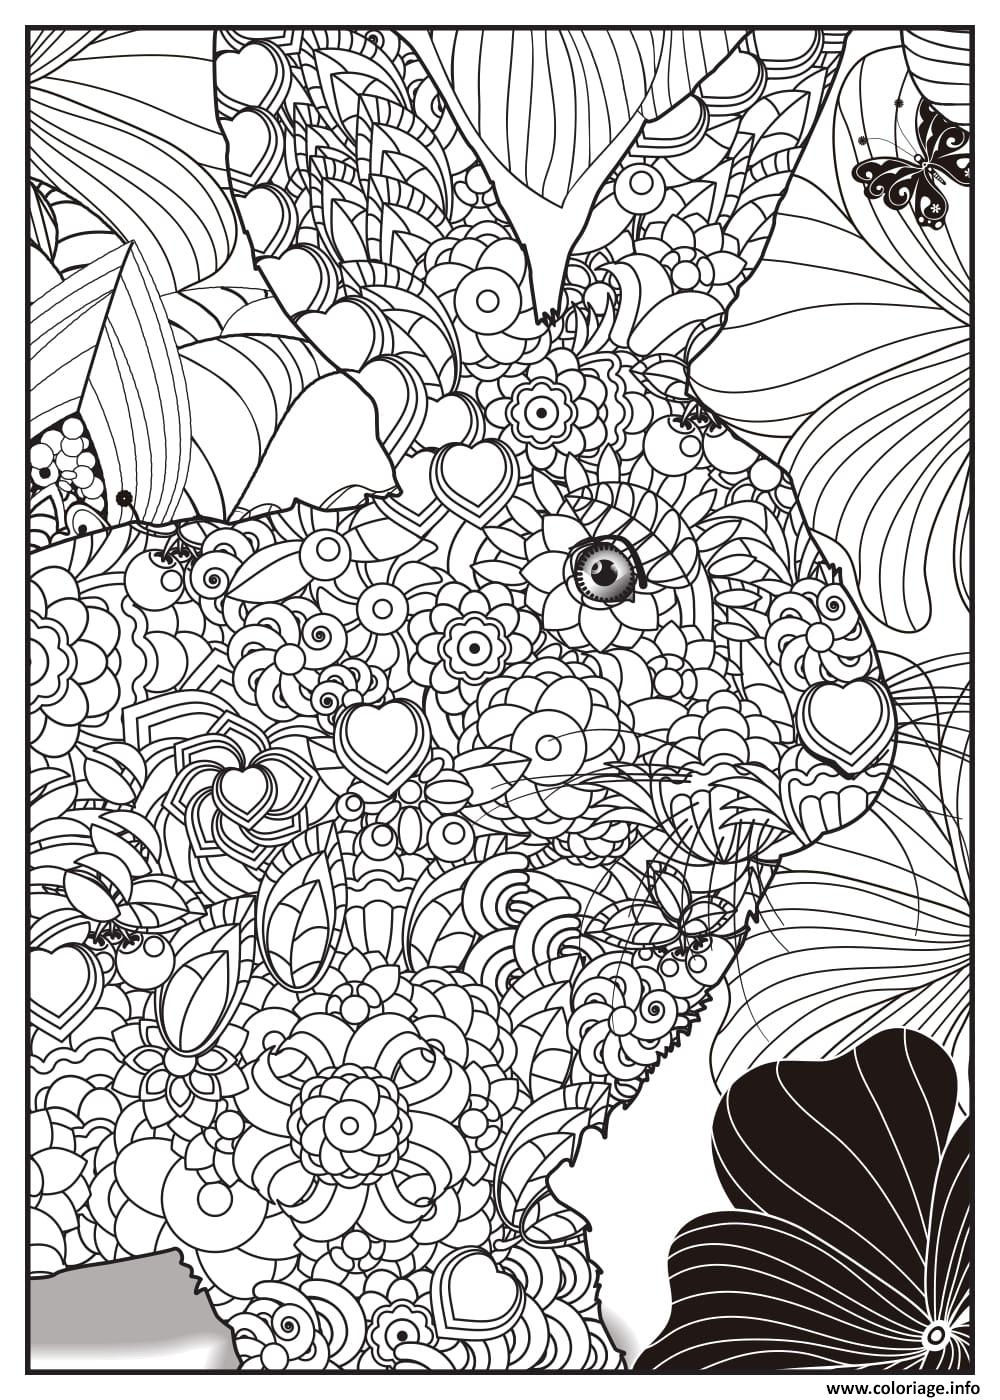 Coloriage Lapin Adulte Animaux dessin